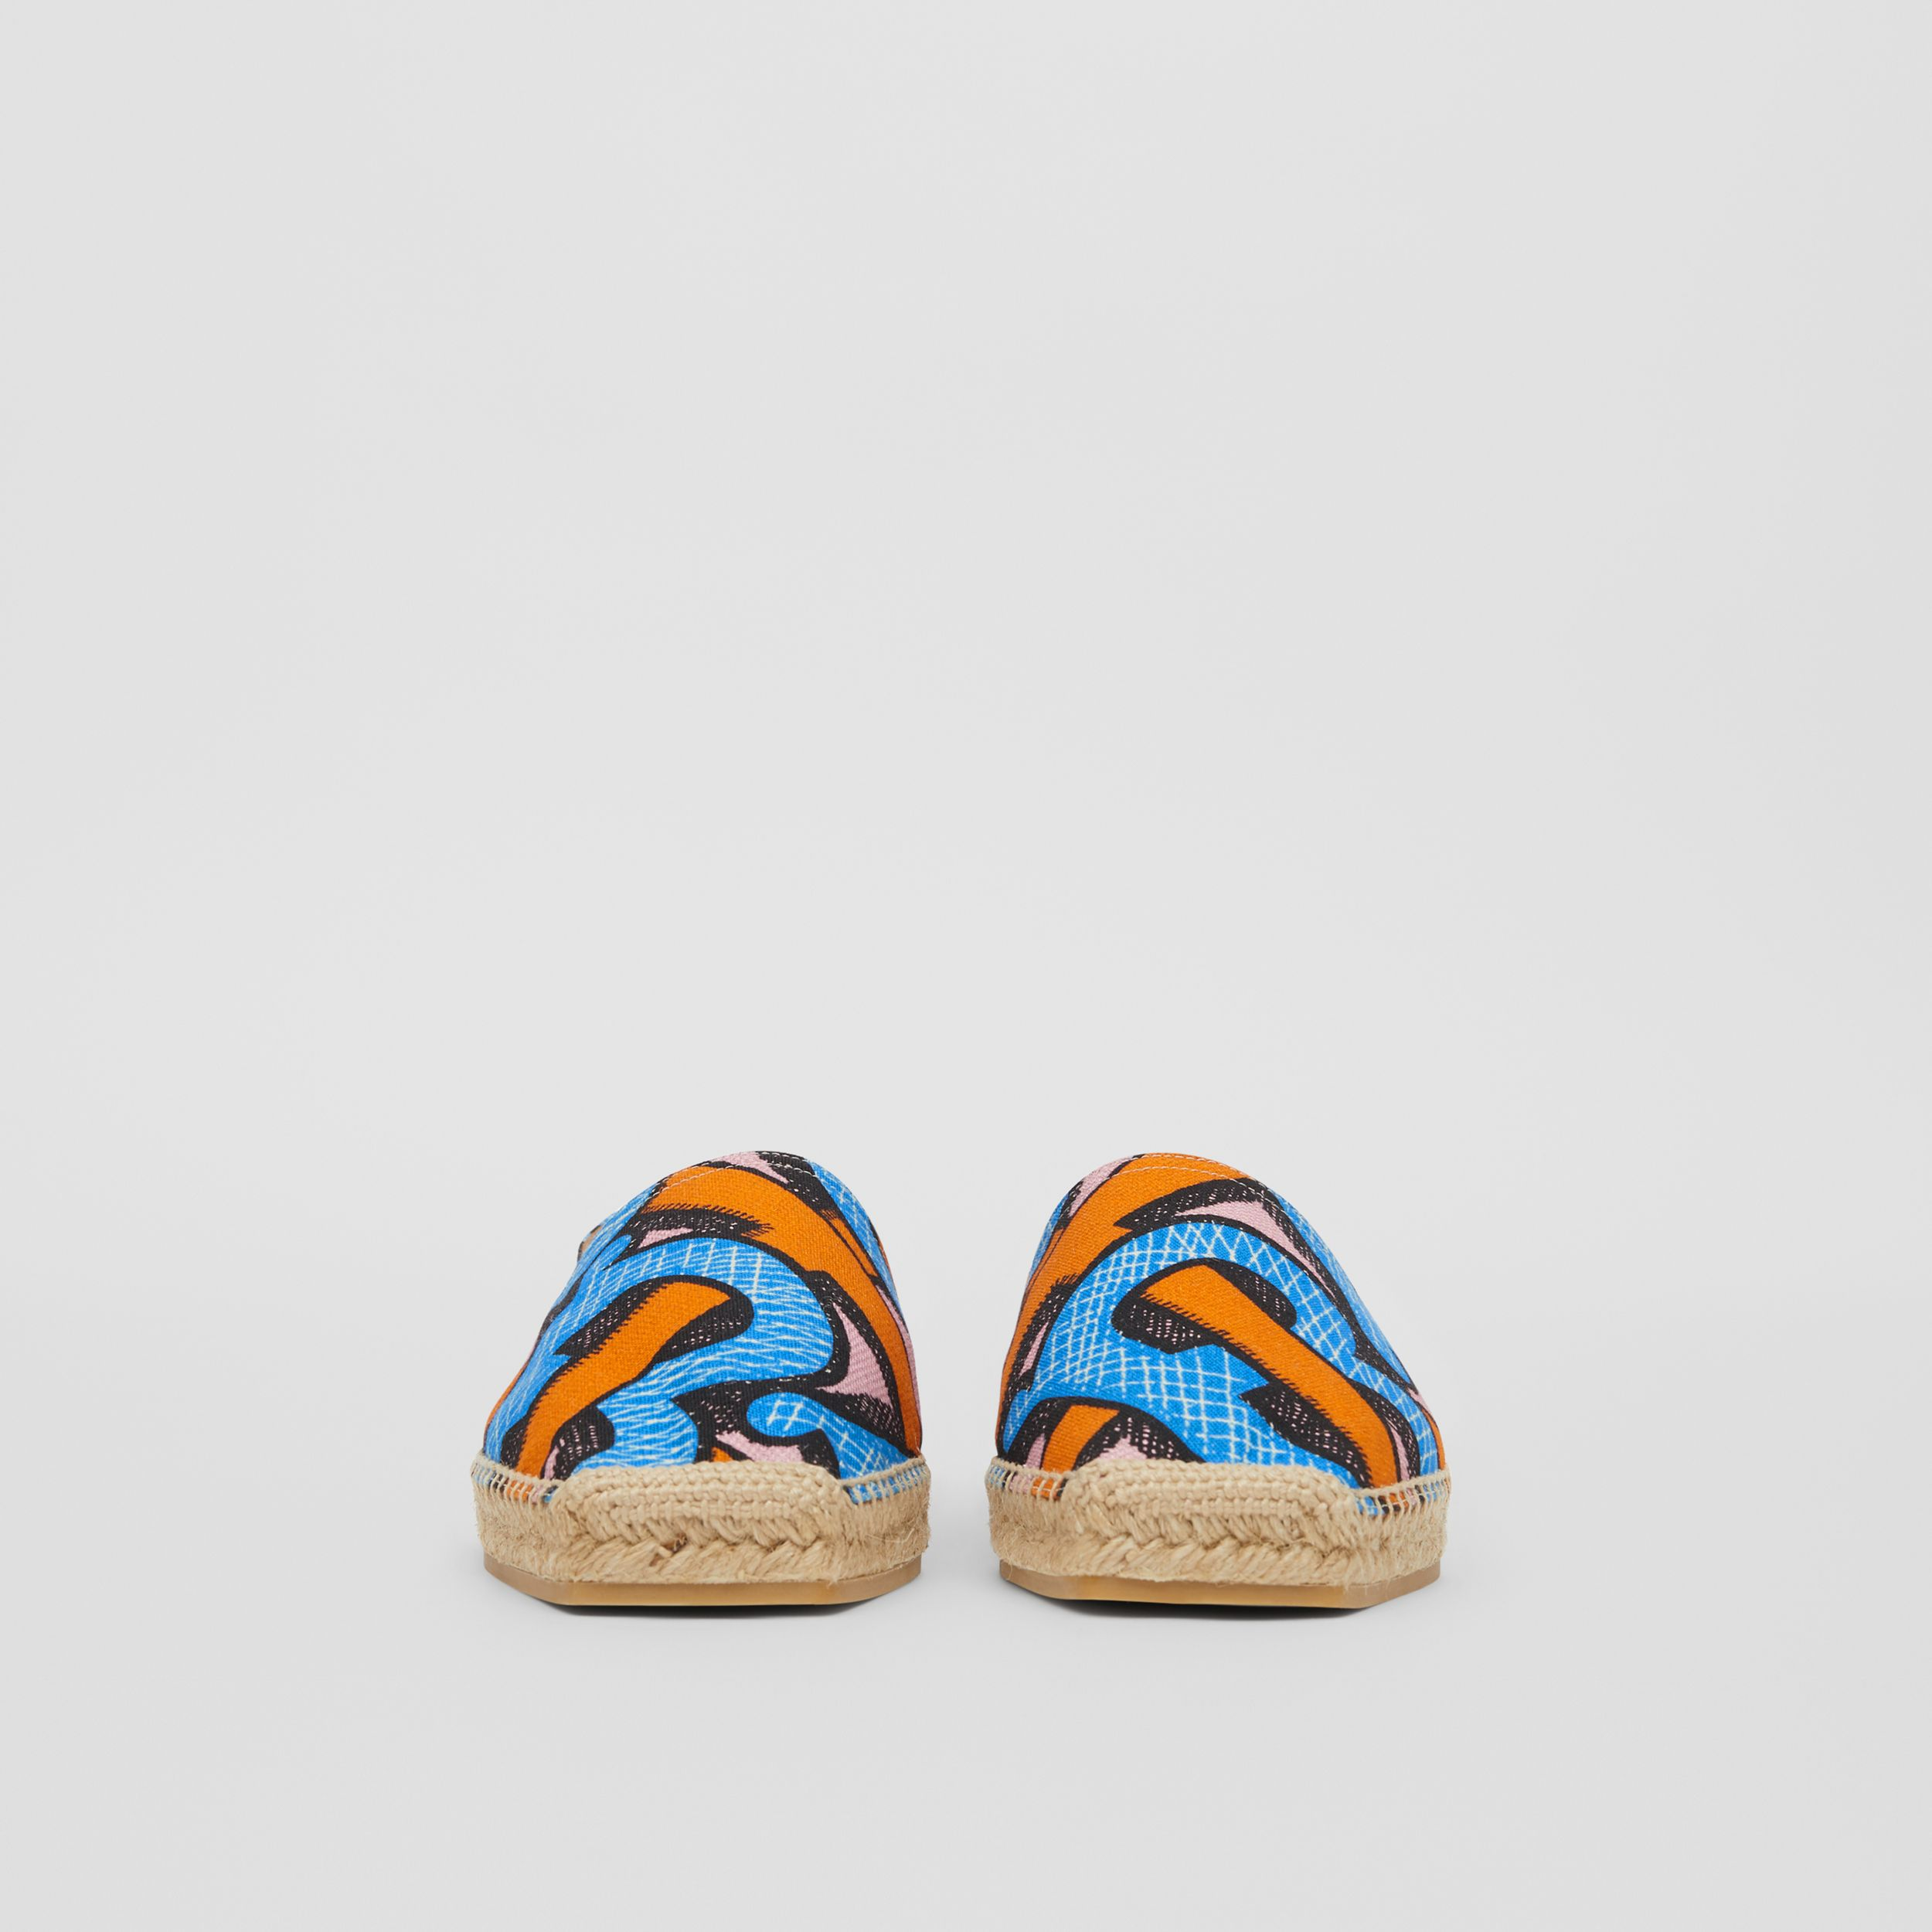 Monogram Print Cotton Canvas Espadrilles in Bright Cobalt - Women | Burberry Canada - 4